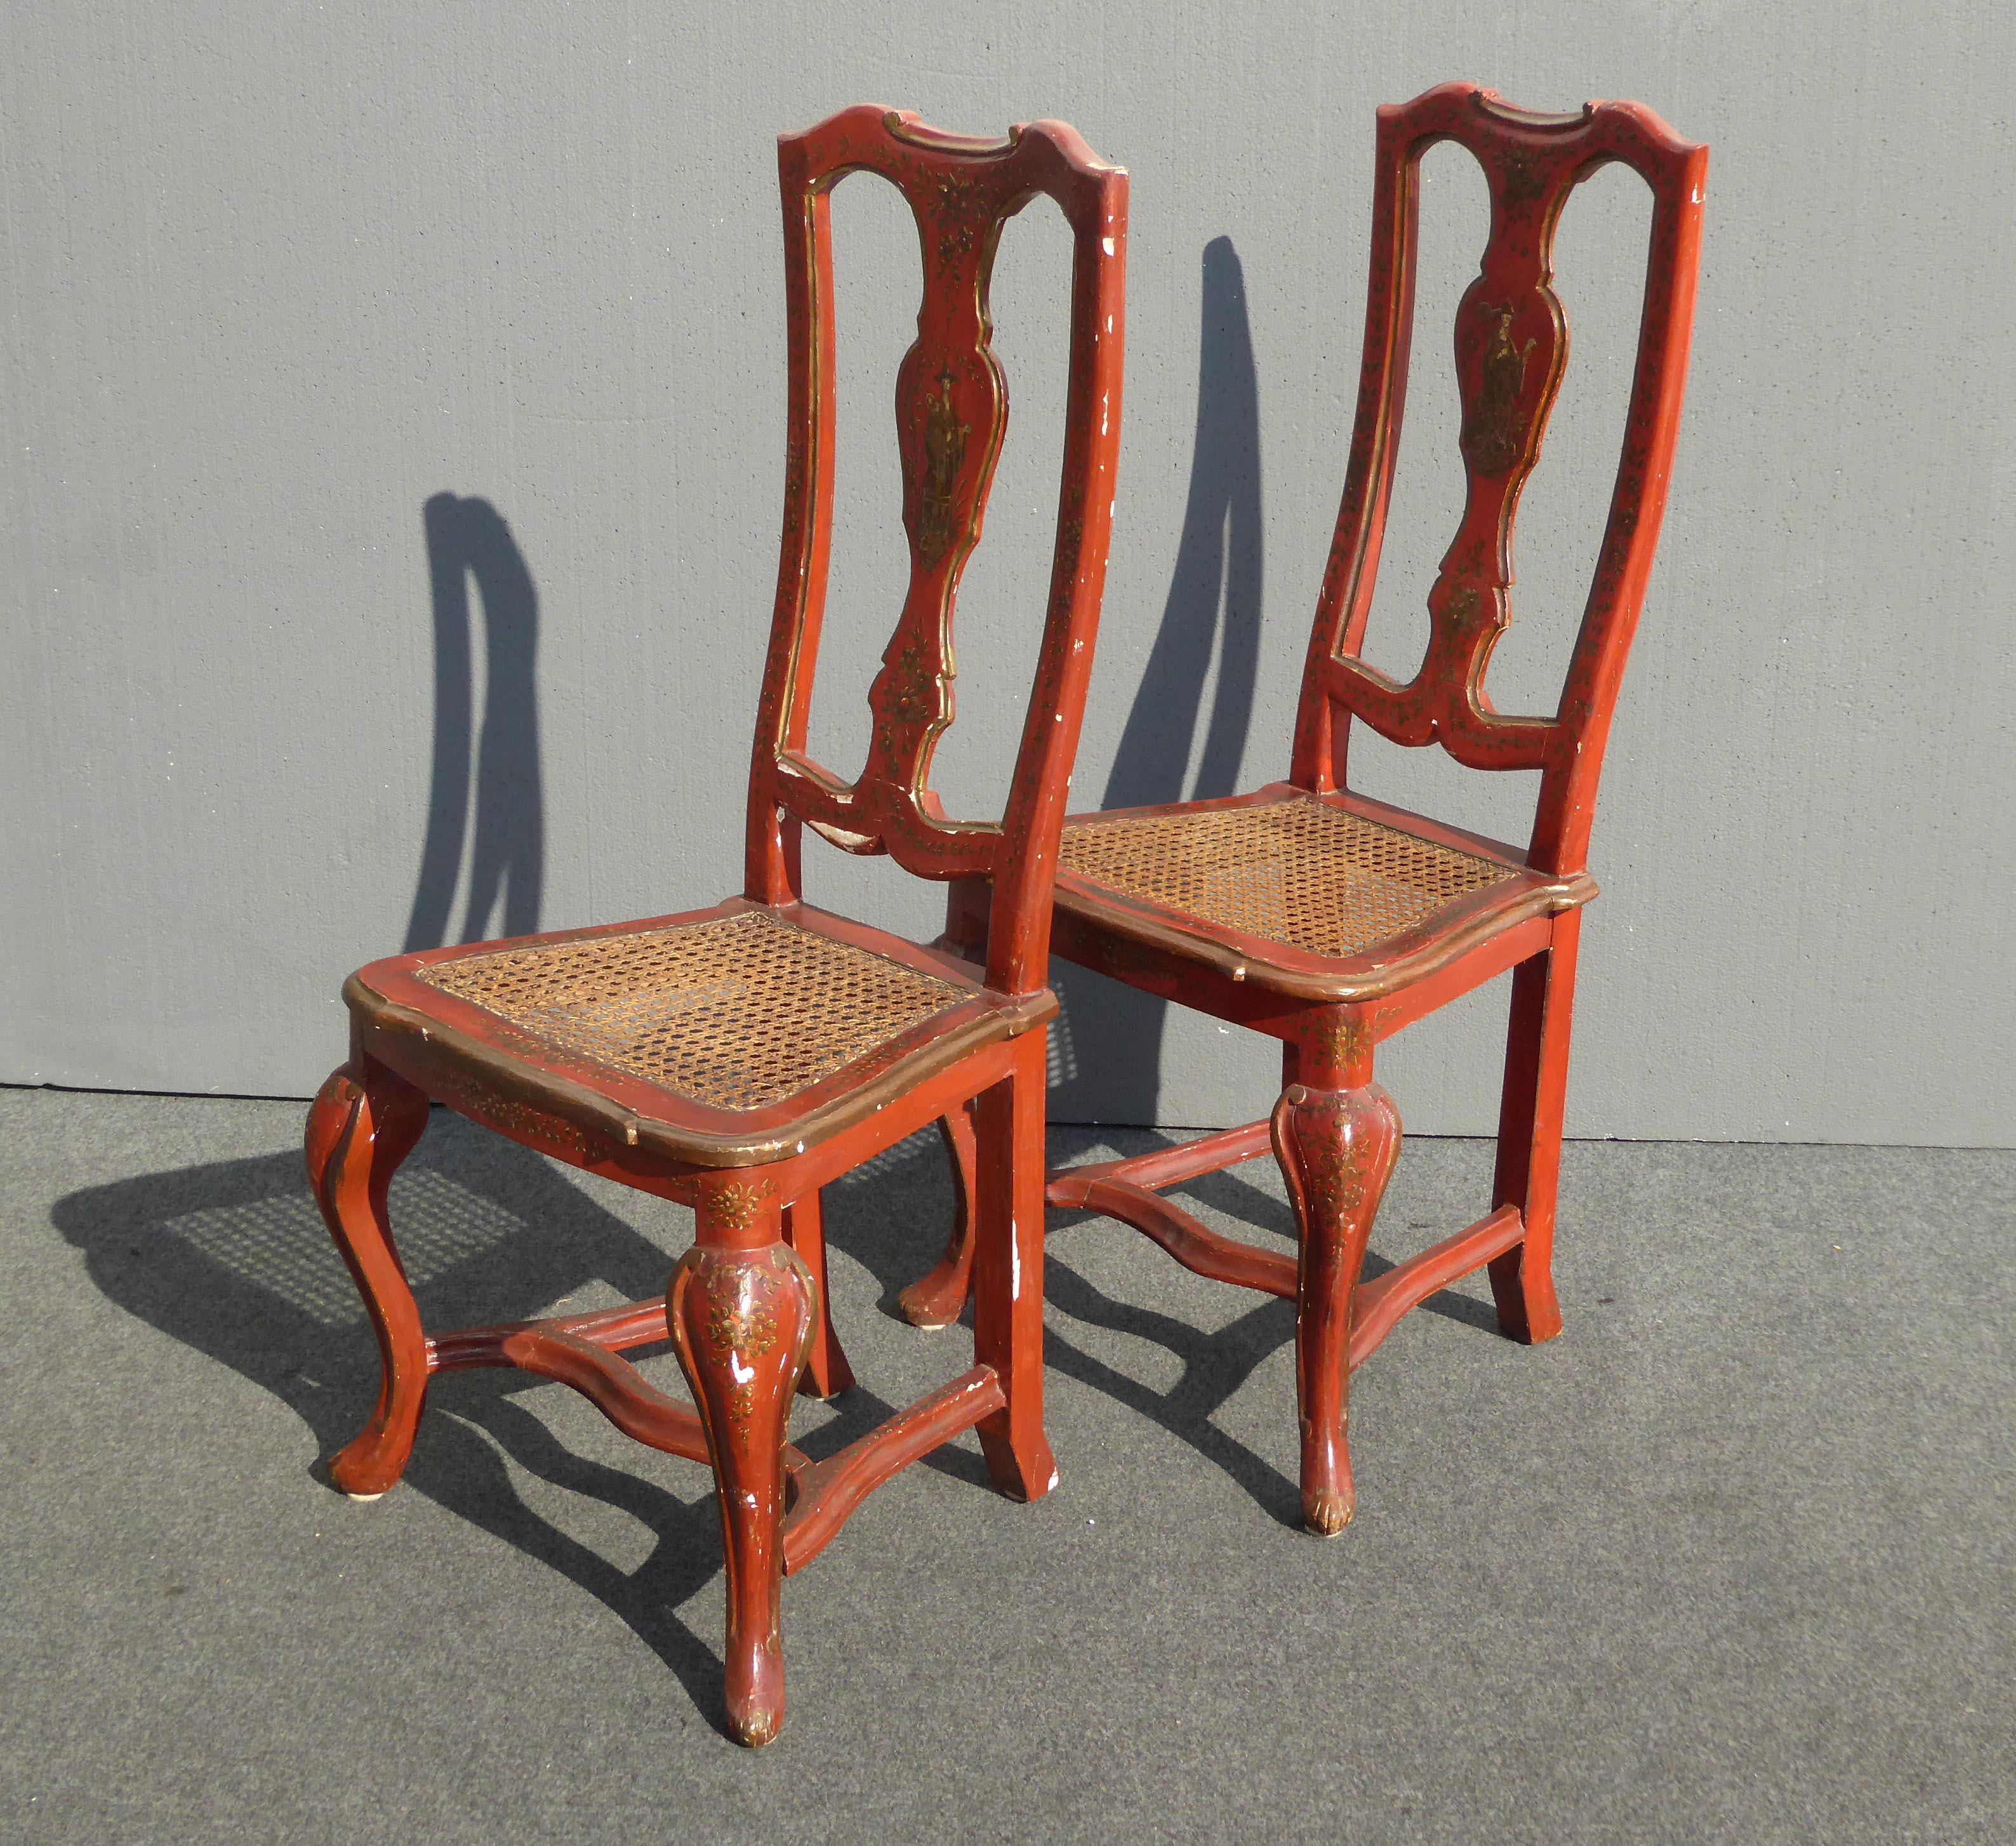 Vintage French Chinoiserie Hand Painted Red Accent Chairs  A Pair   Image 4  Of 11